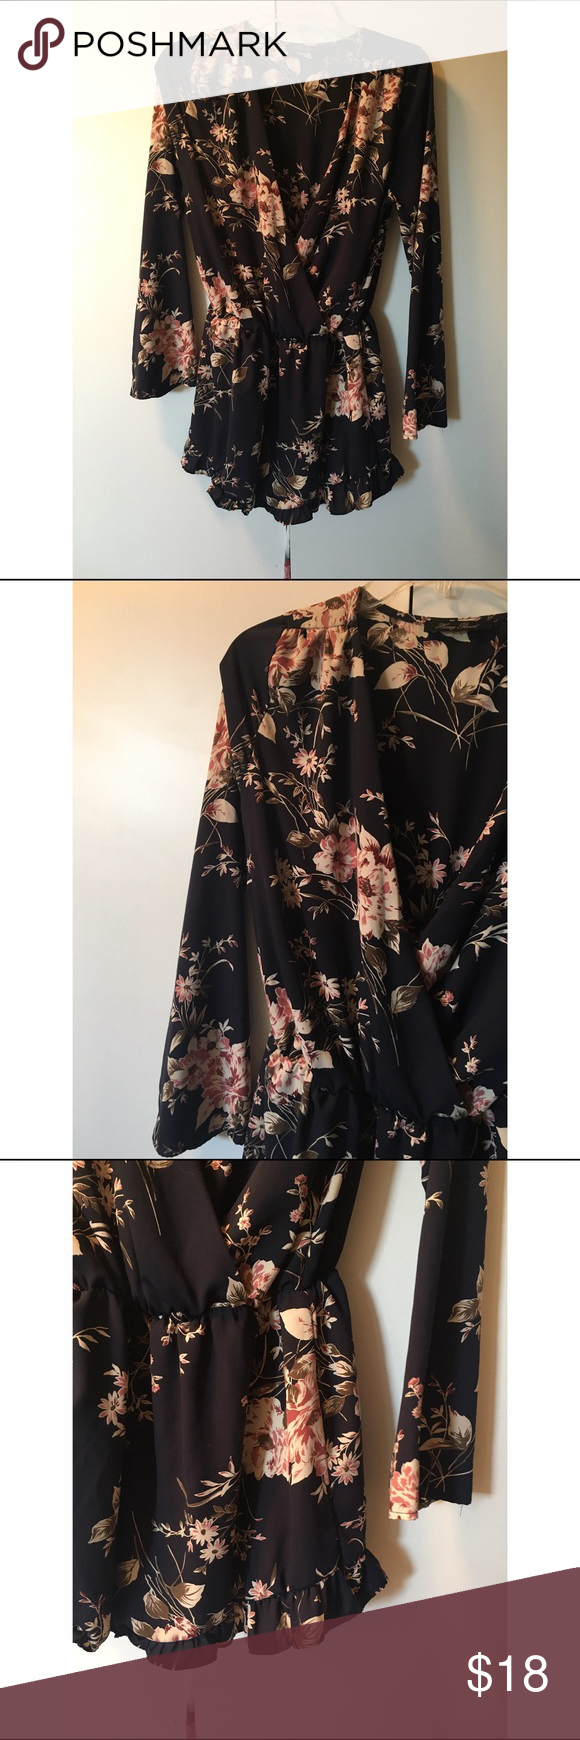 """Floral romper Adorable romper. Has a """"romantic"""" feel to it. Can be worn with a bralette peaking out! ❌No trades Runway 7 Dresses"""